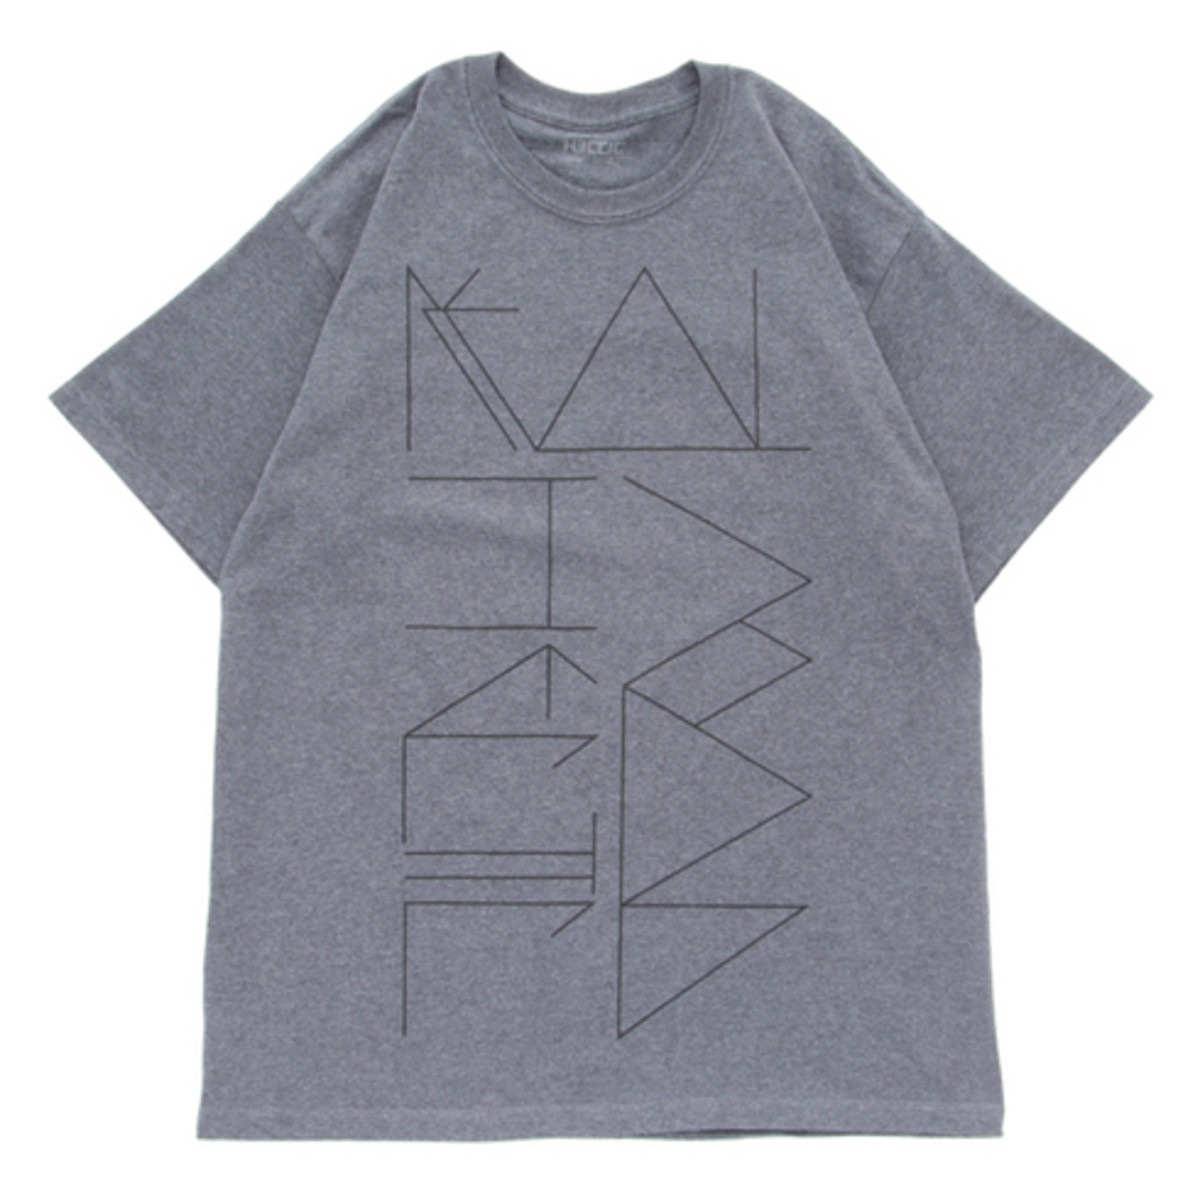 Psychedelic Lettering T-Shirt Gray